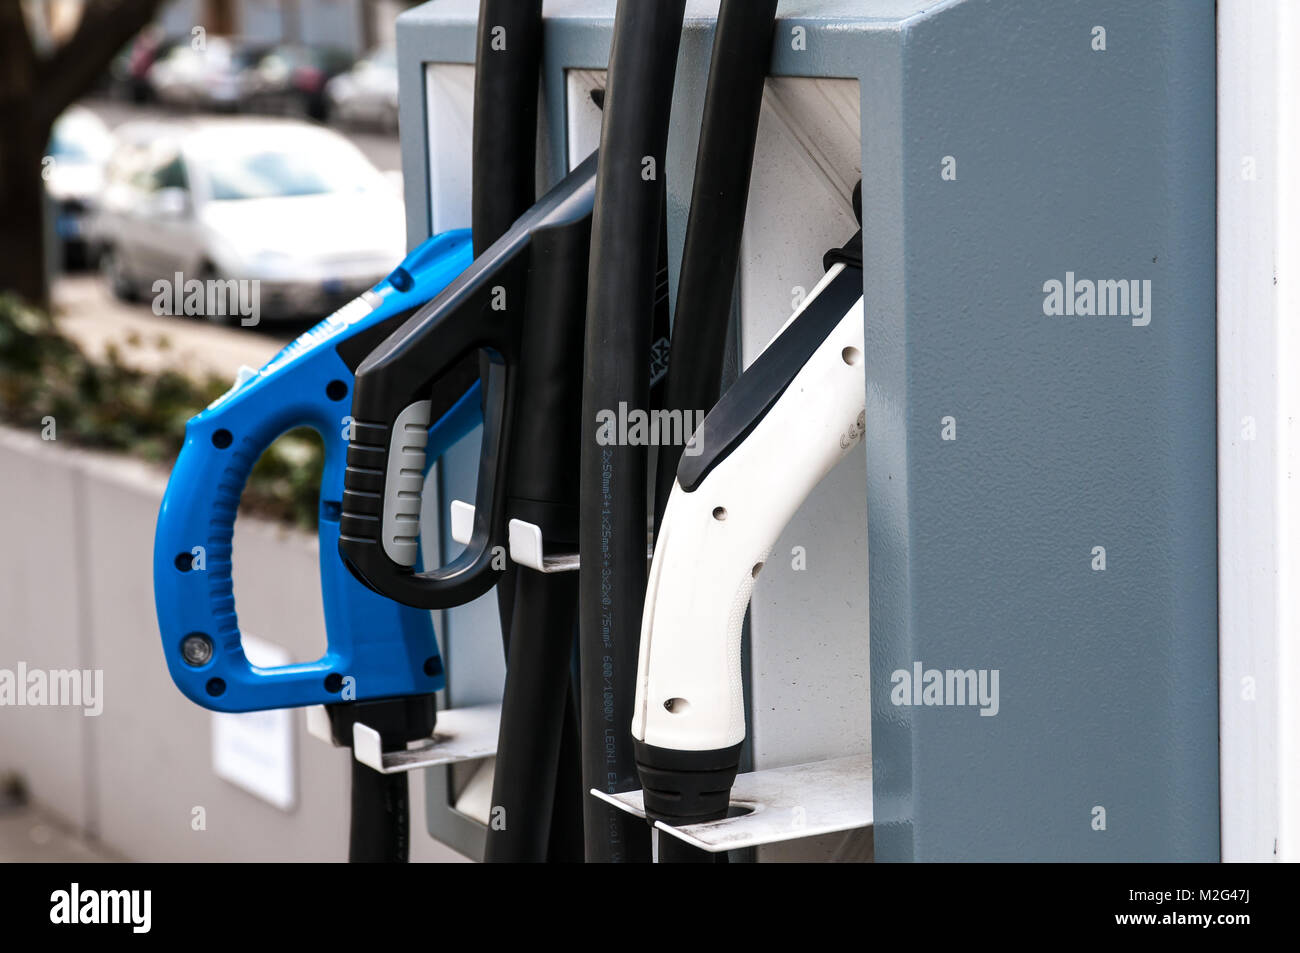 Prague, Czech Republic, 2 February 2018, charging station for electric cars and hybrid cars - Stock Image